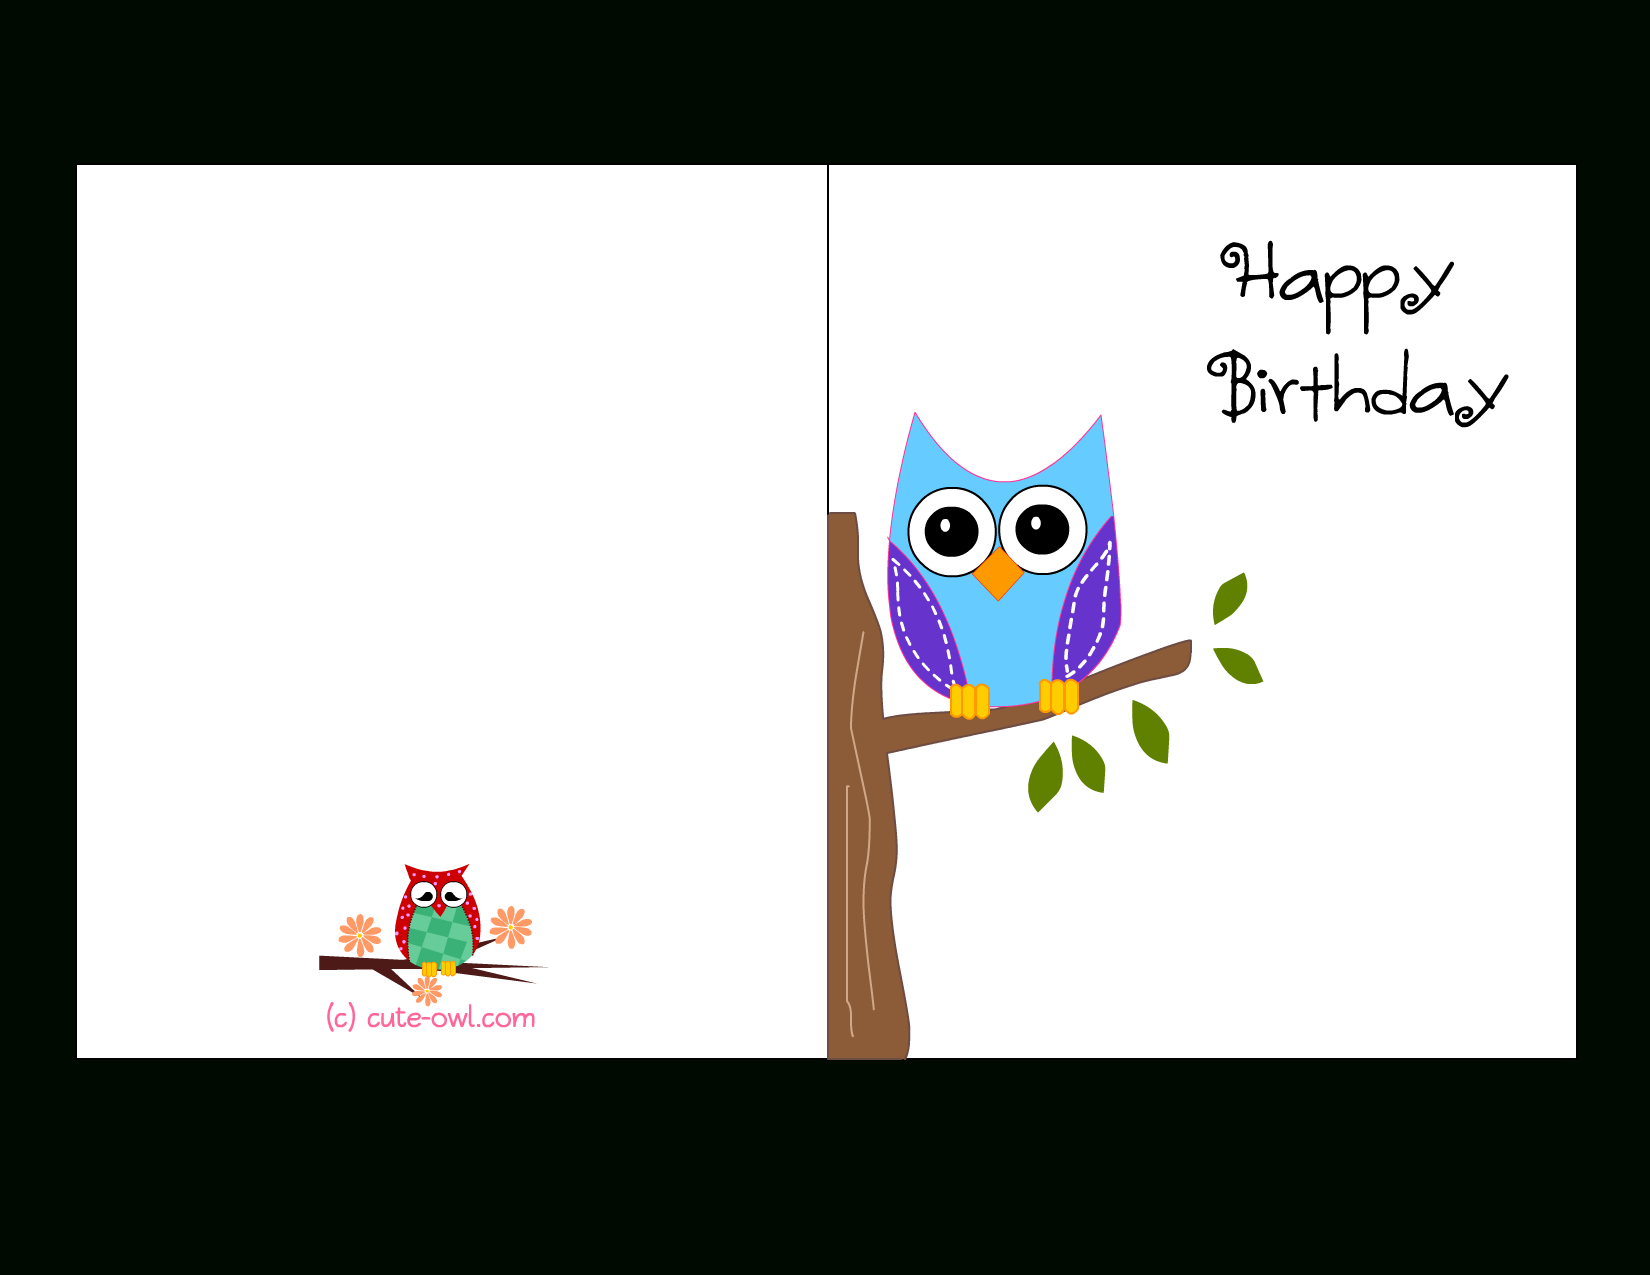 Printable Birthday Cards With Photo - Kaza.psstech.co - Customized Birthday Cards Free Printable